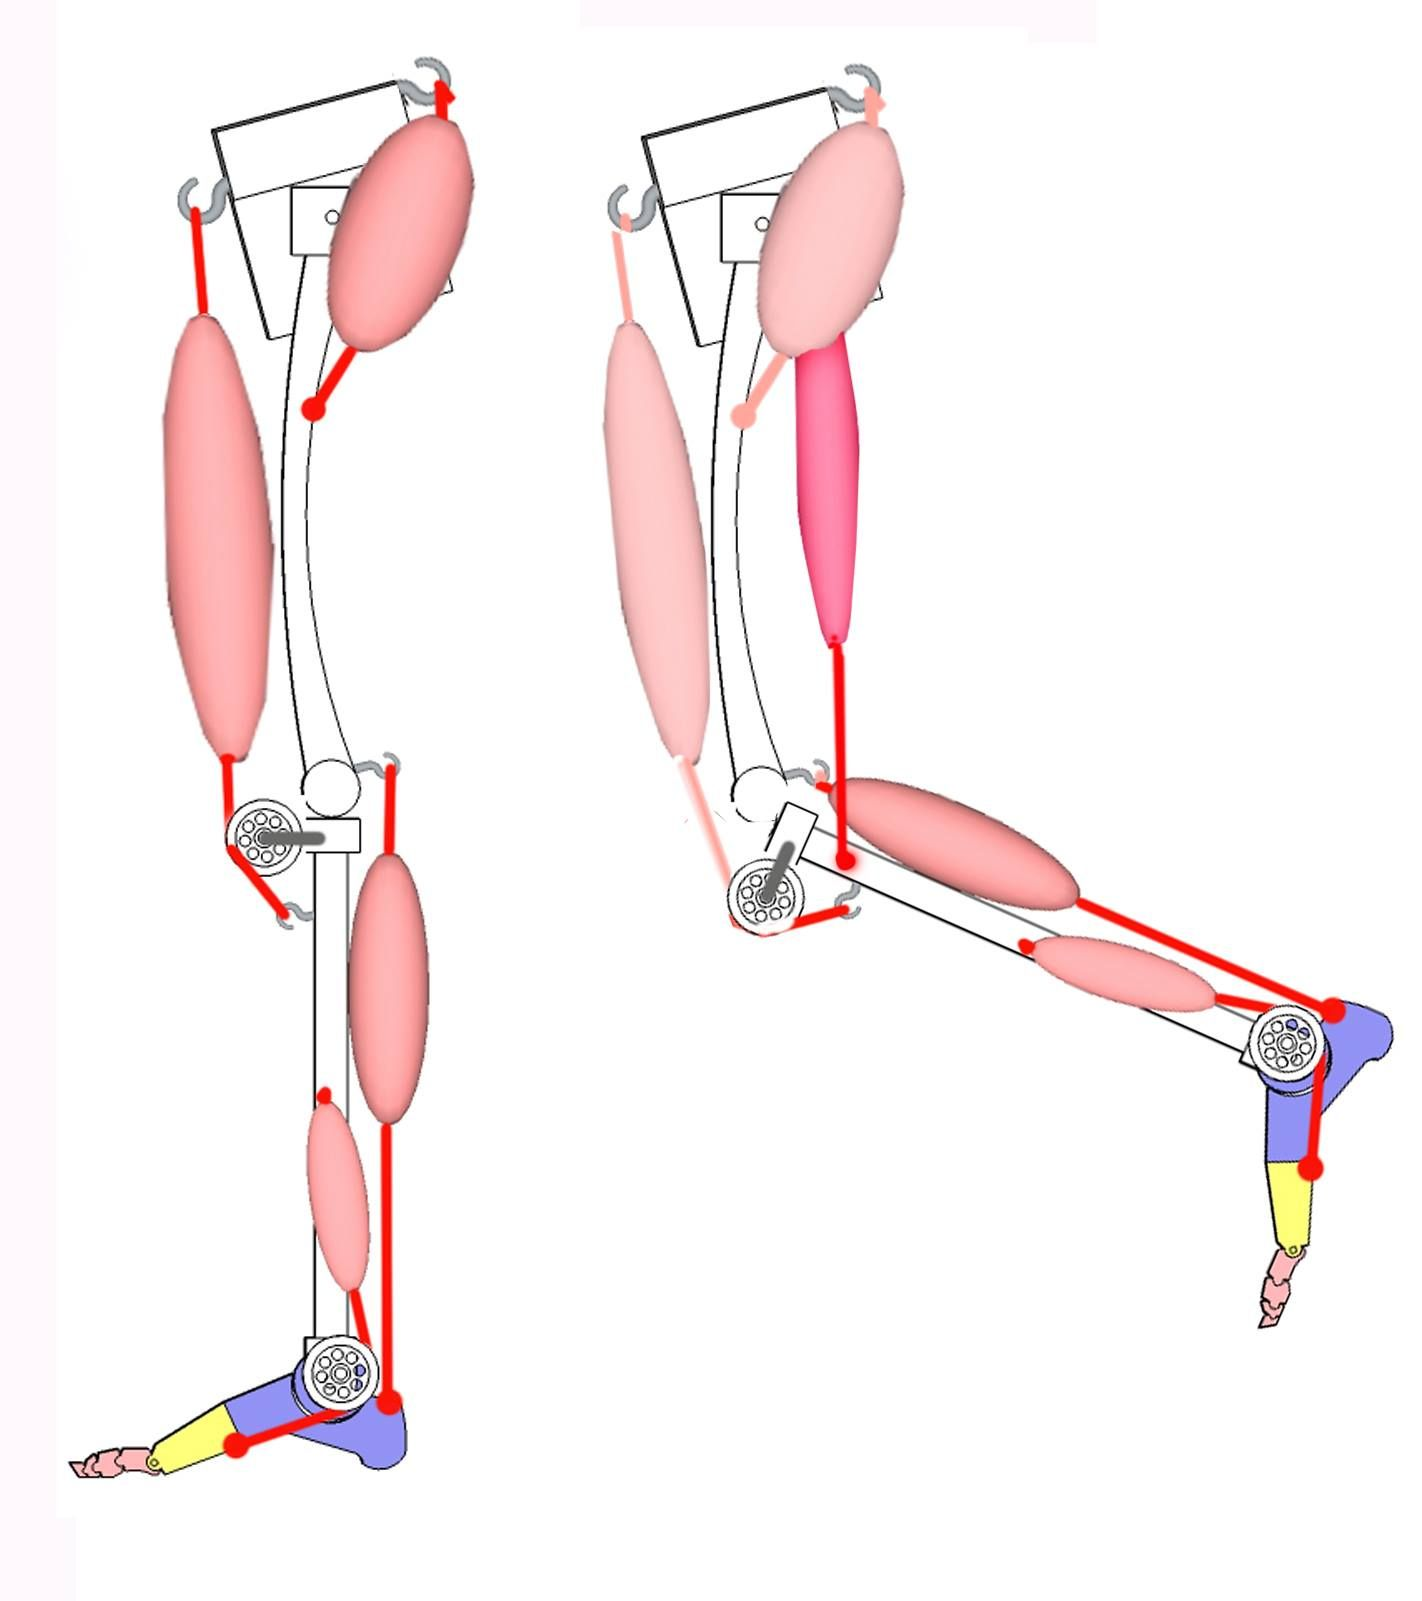 knee flexion with hamstring muscles | CG_3D_AnatomyStudy | Pinterest